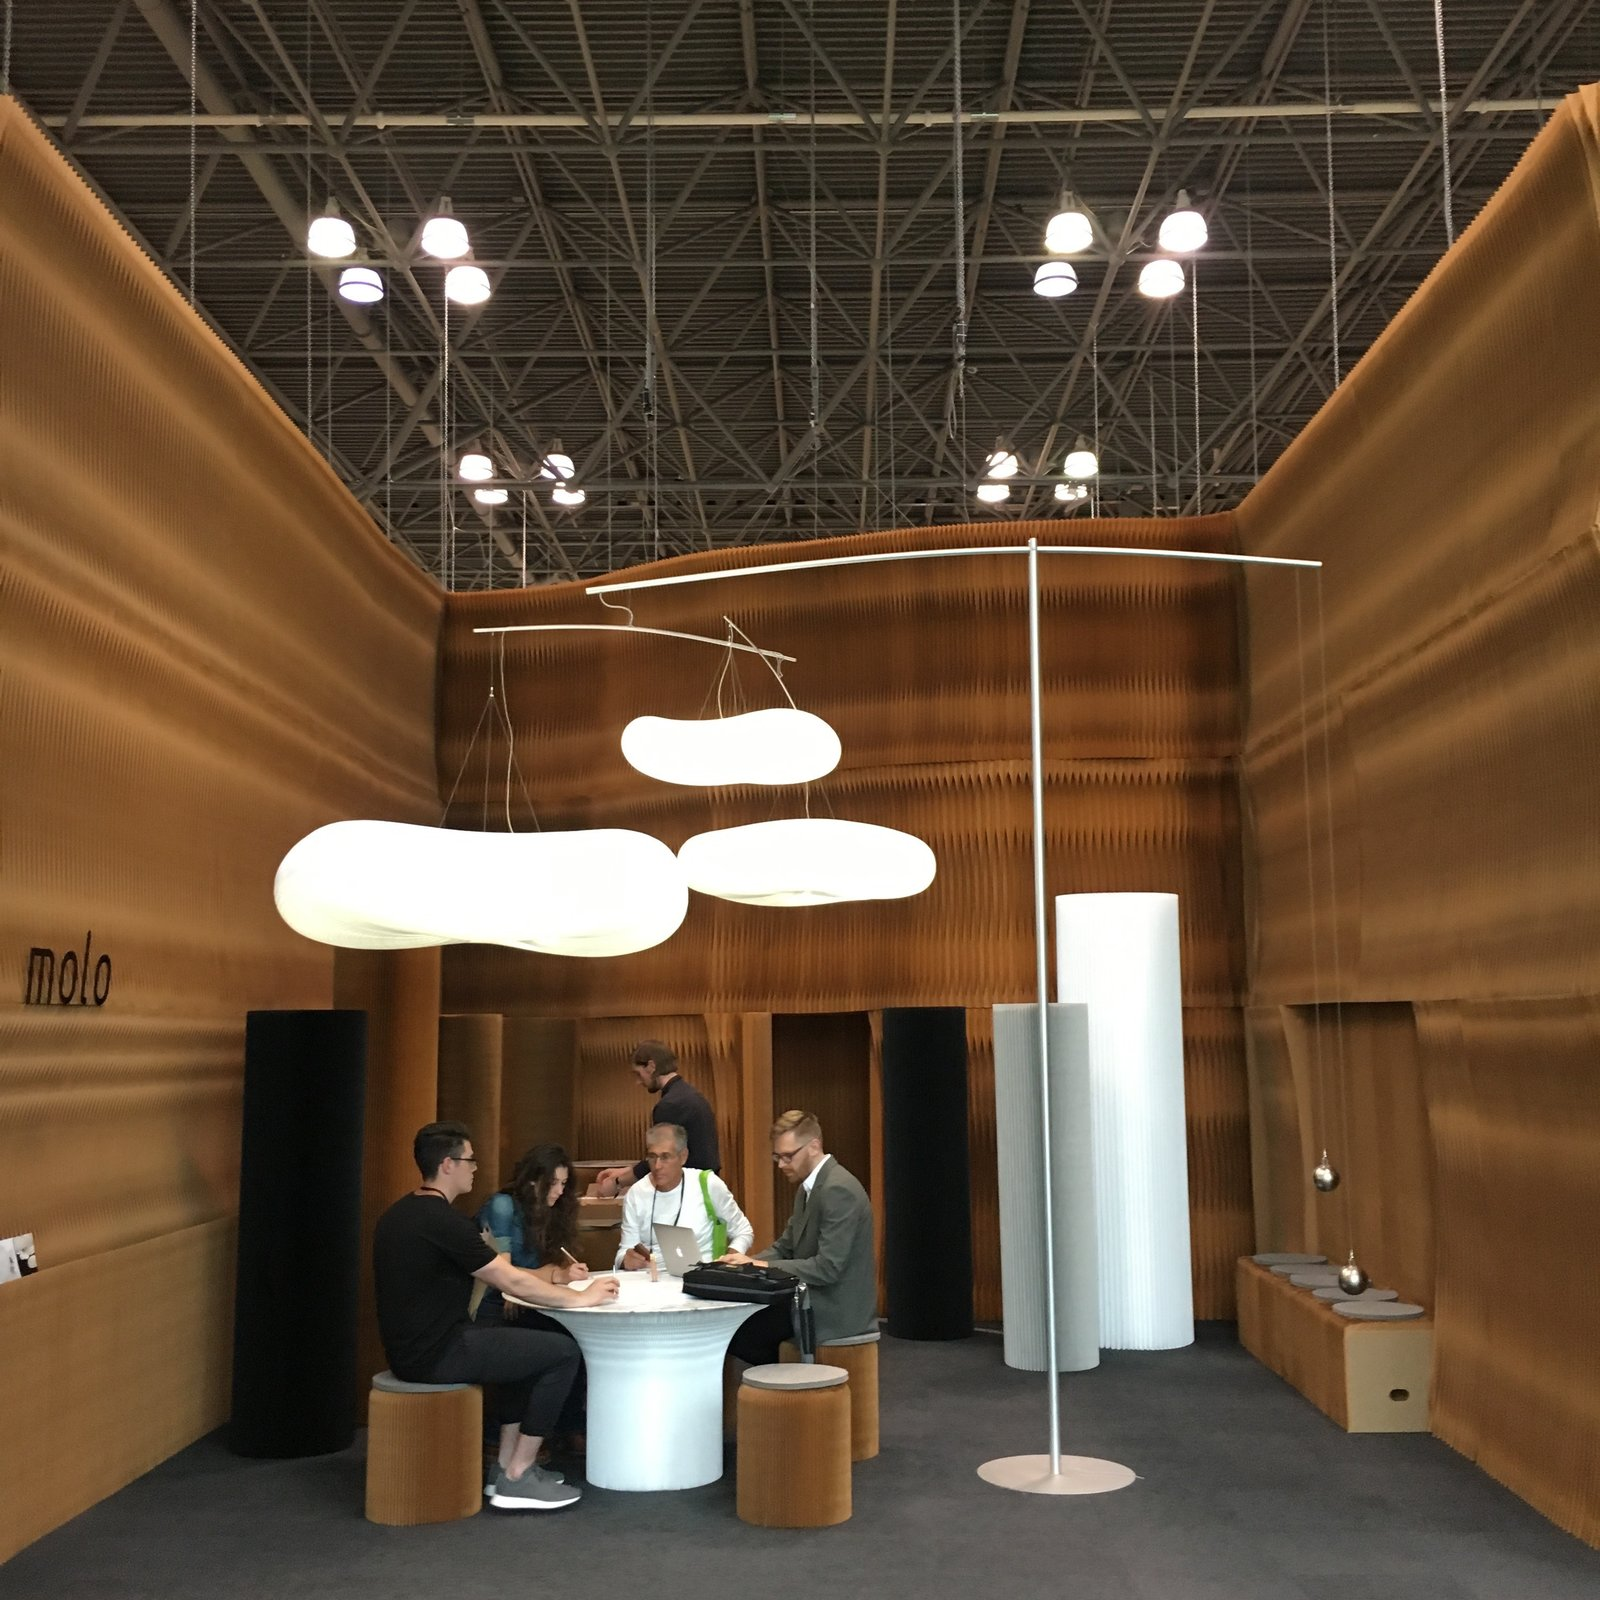 Molo, based in Vancouver, brought their ingenious booth system to ICFF. The walls are constructed of paper, and once the show concludes, it folds up for travel back to the studio. The cloud-like pendants are counter-balanced by hanging weights.  Photo 31 of 36 in The Best of New York Design Week 2017